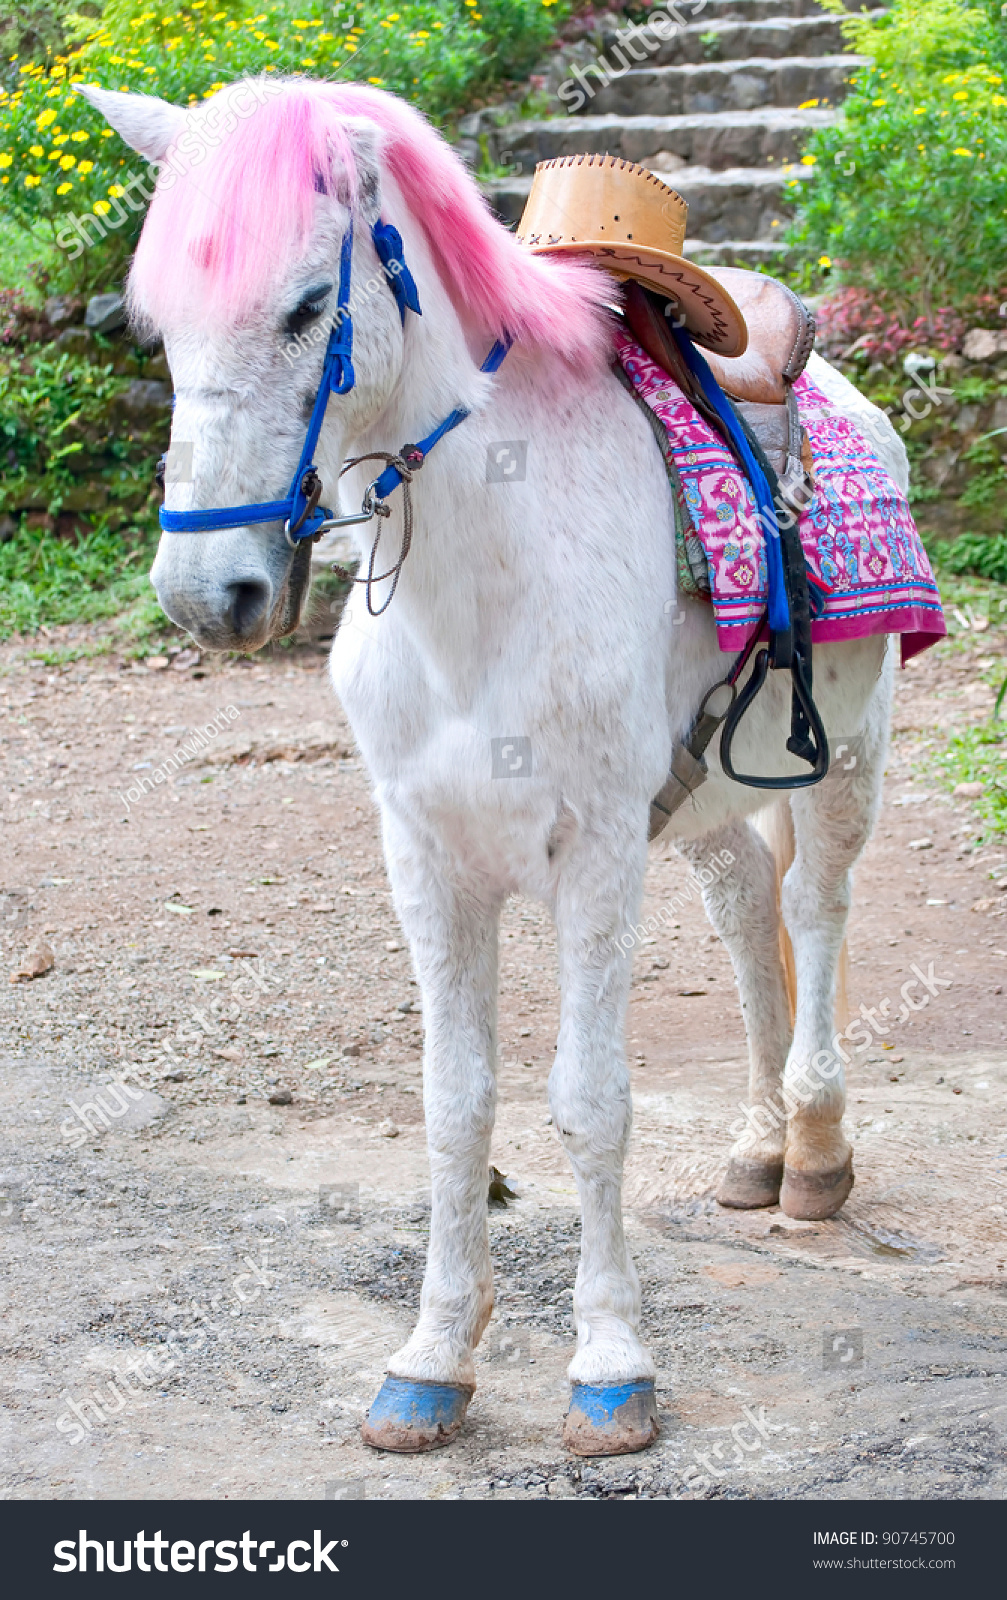 White Horse Pink Hair Cowboy Hat Stock Photo Edit Now 90745700